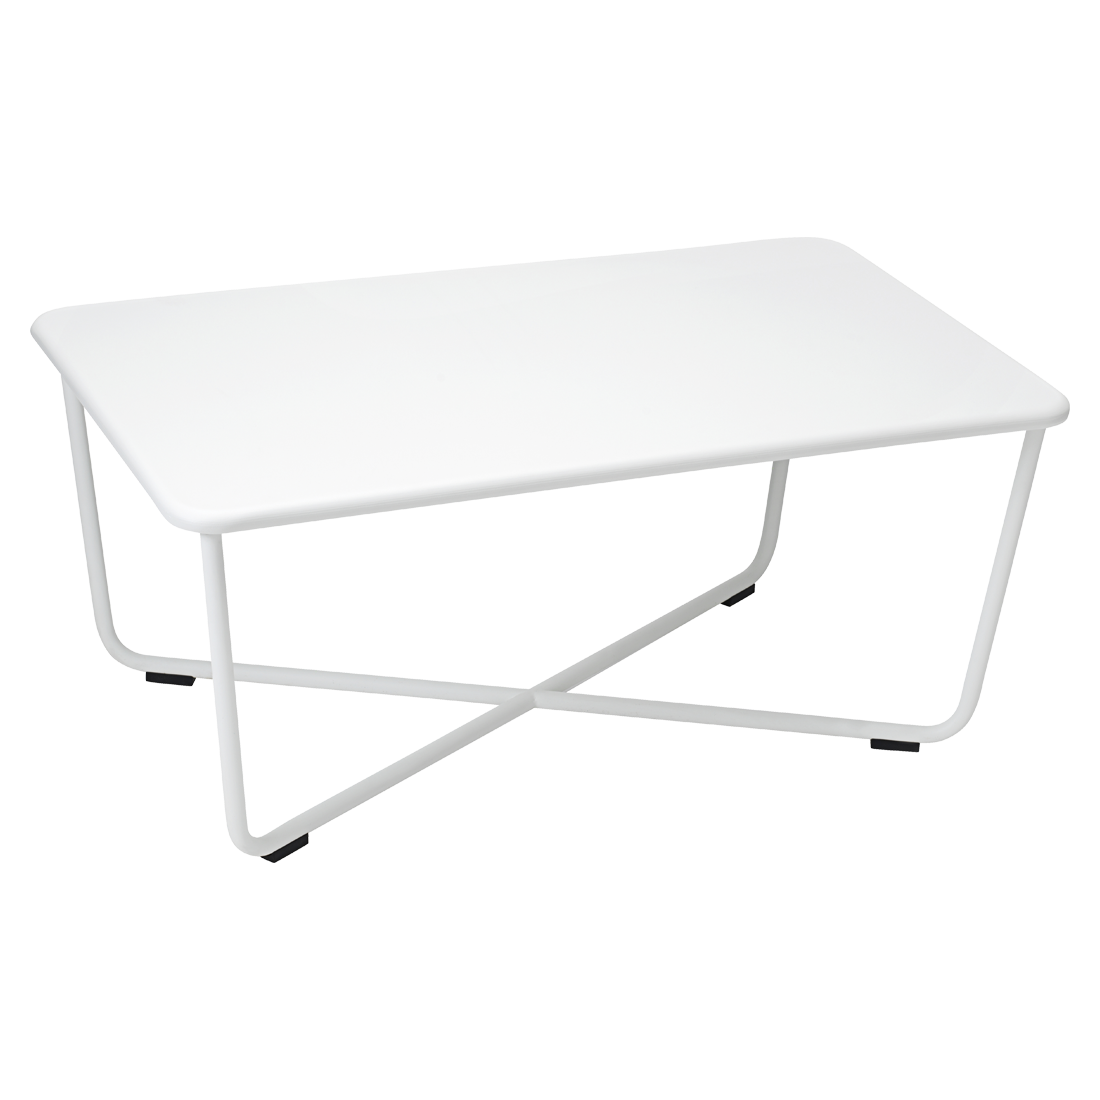 Croisette Low Table Metal Table For Outdoor Living Space